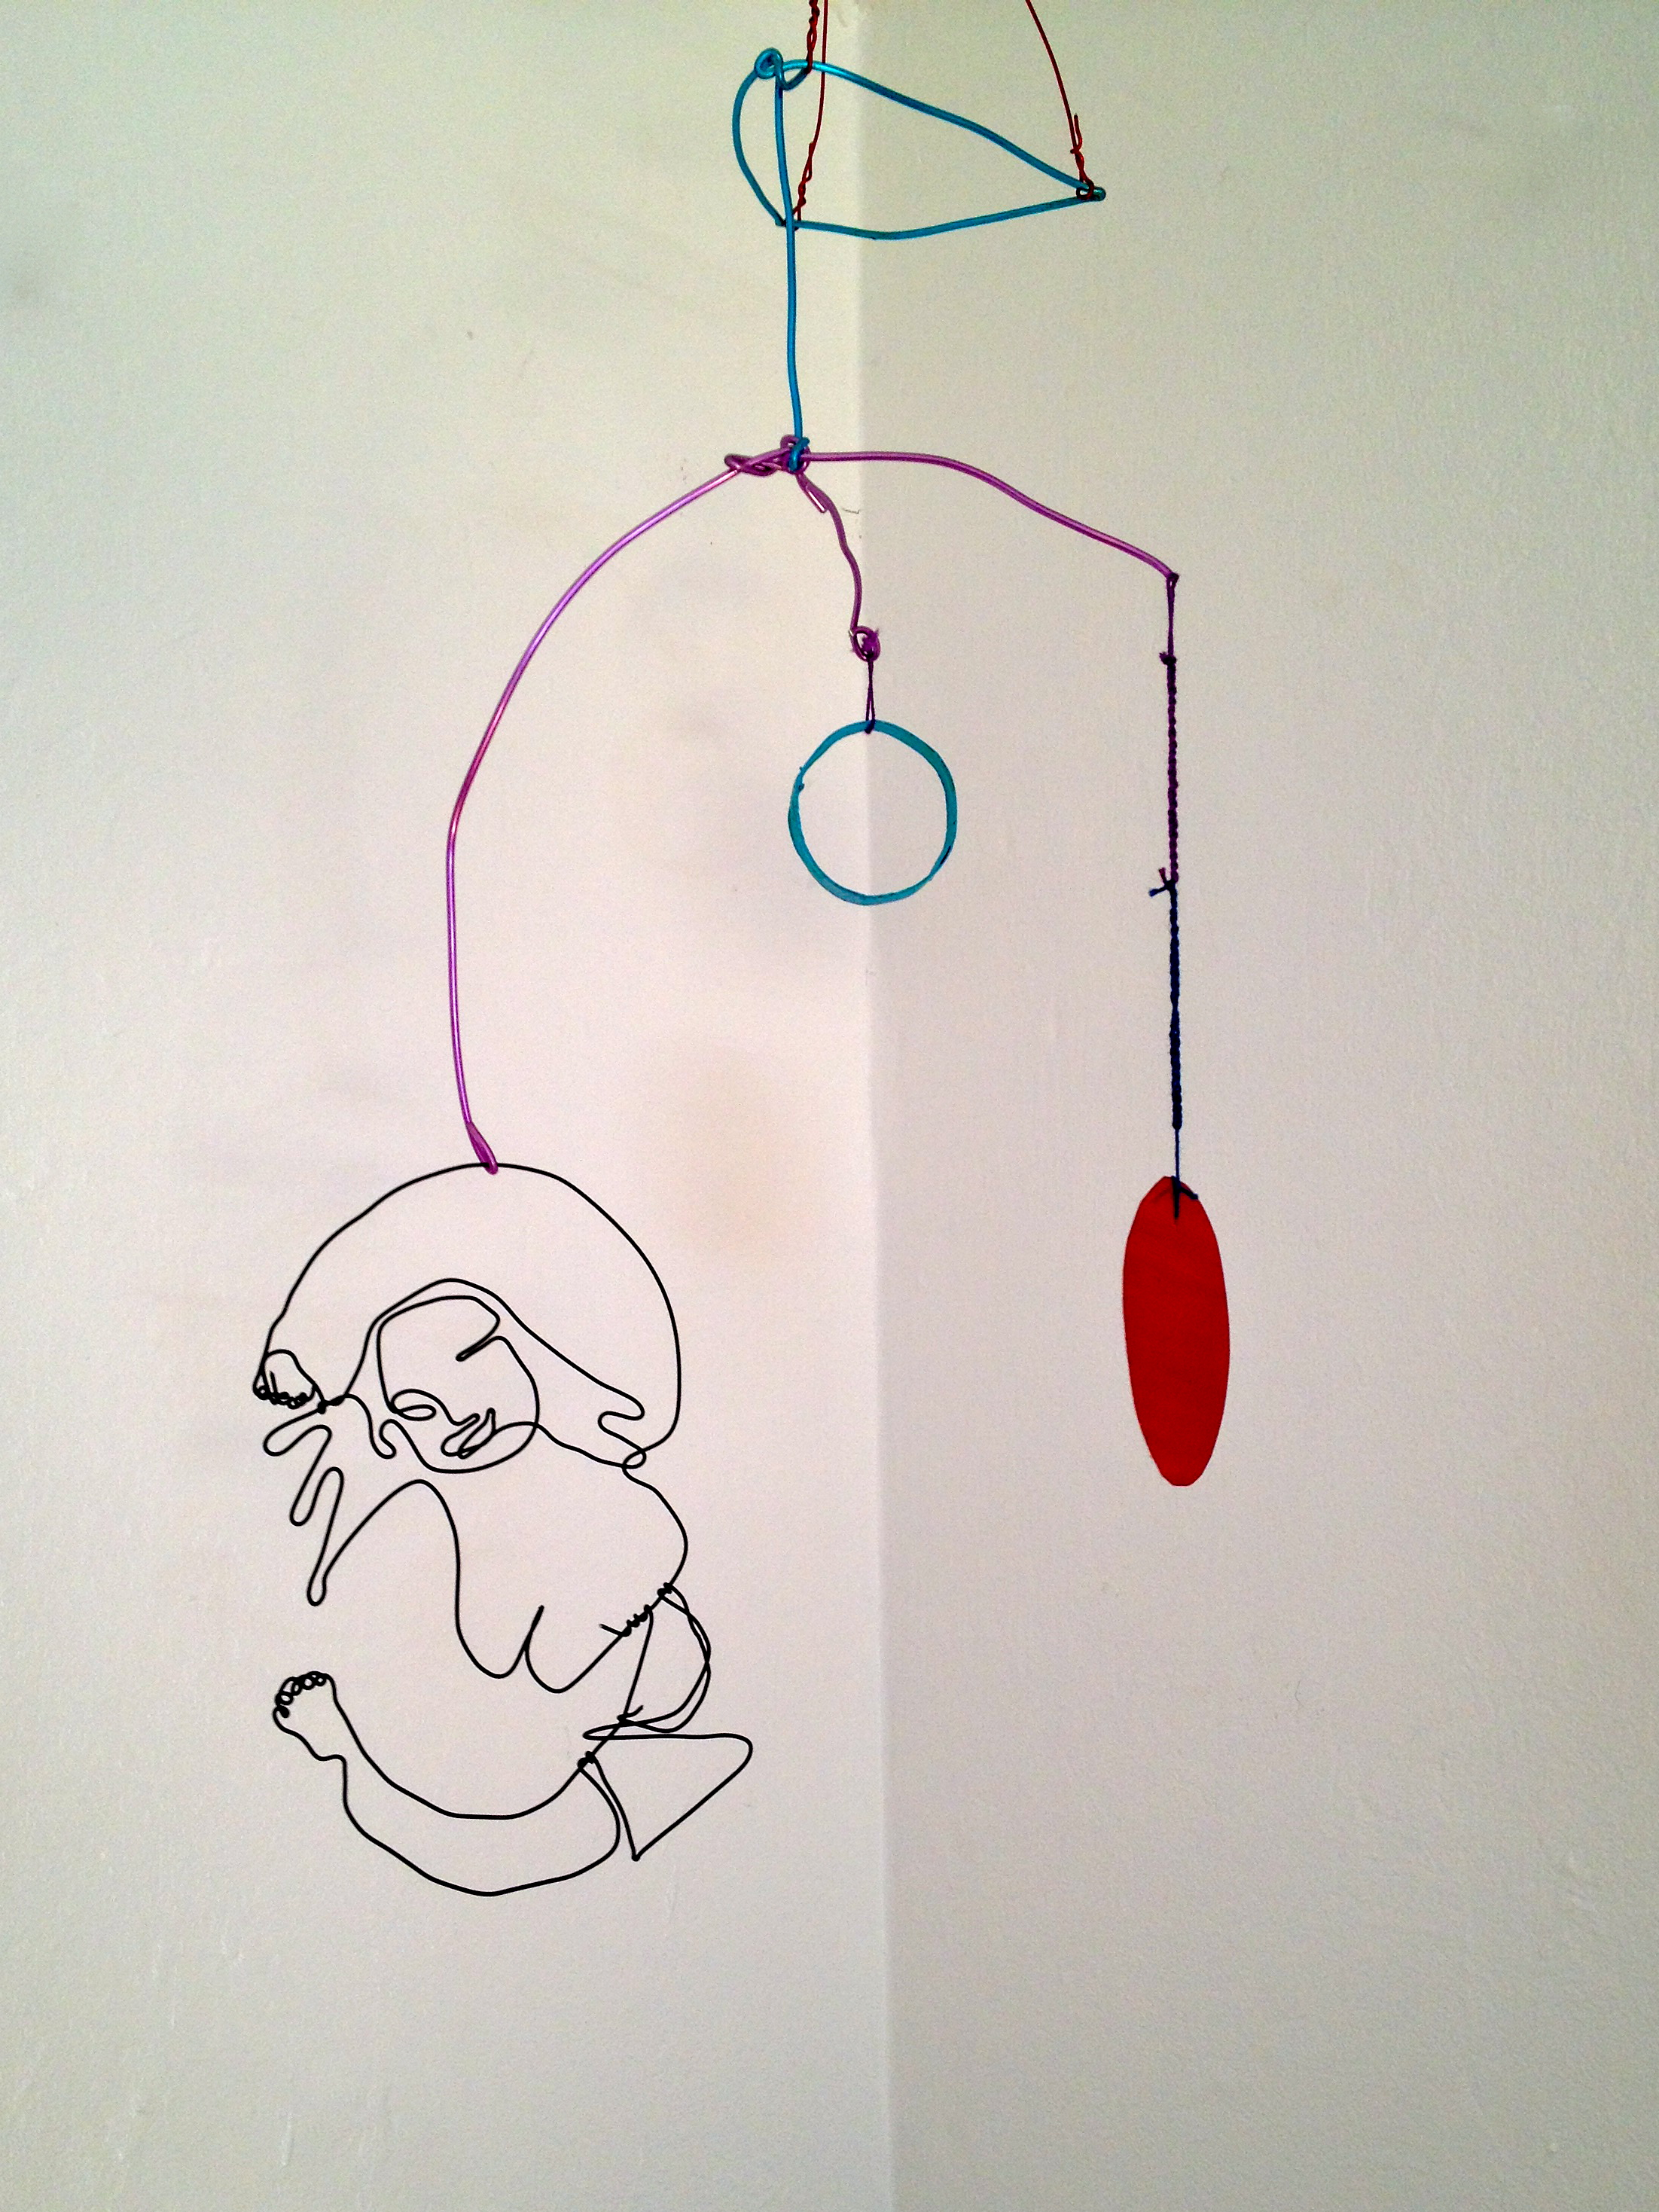 Maureen Cavanaugh.  Panty Dropper . Wire, metal, cardboard, embroidery thread and enamel paint. 18 inches x 12 inches. 2013.